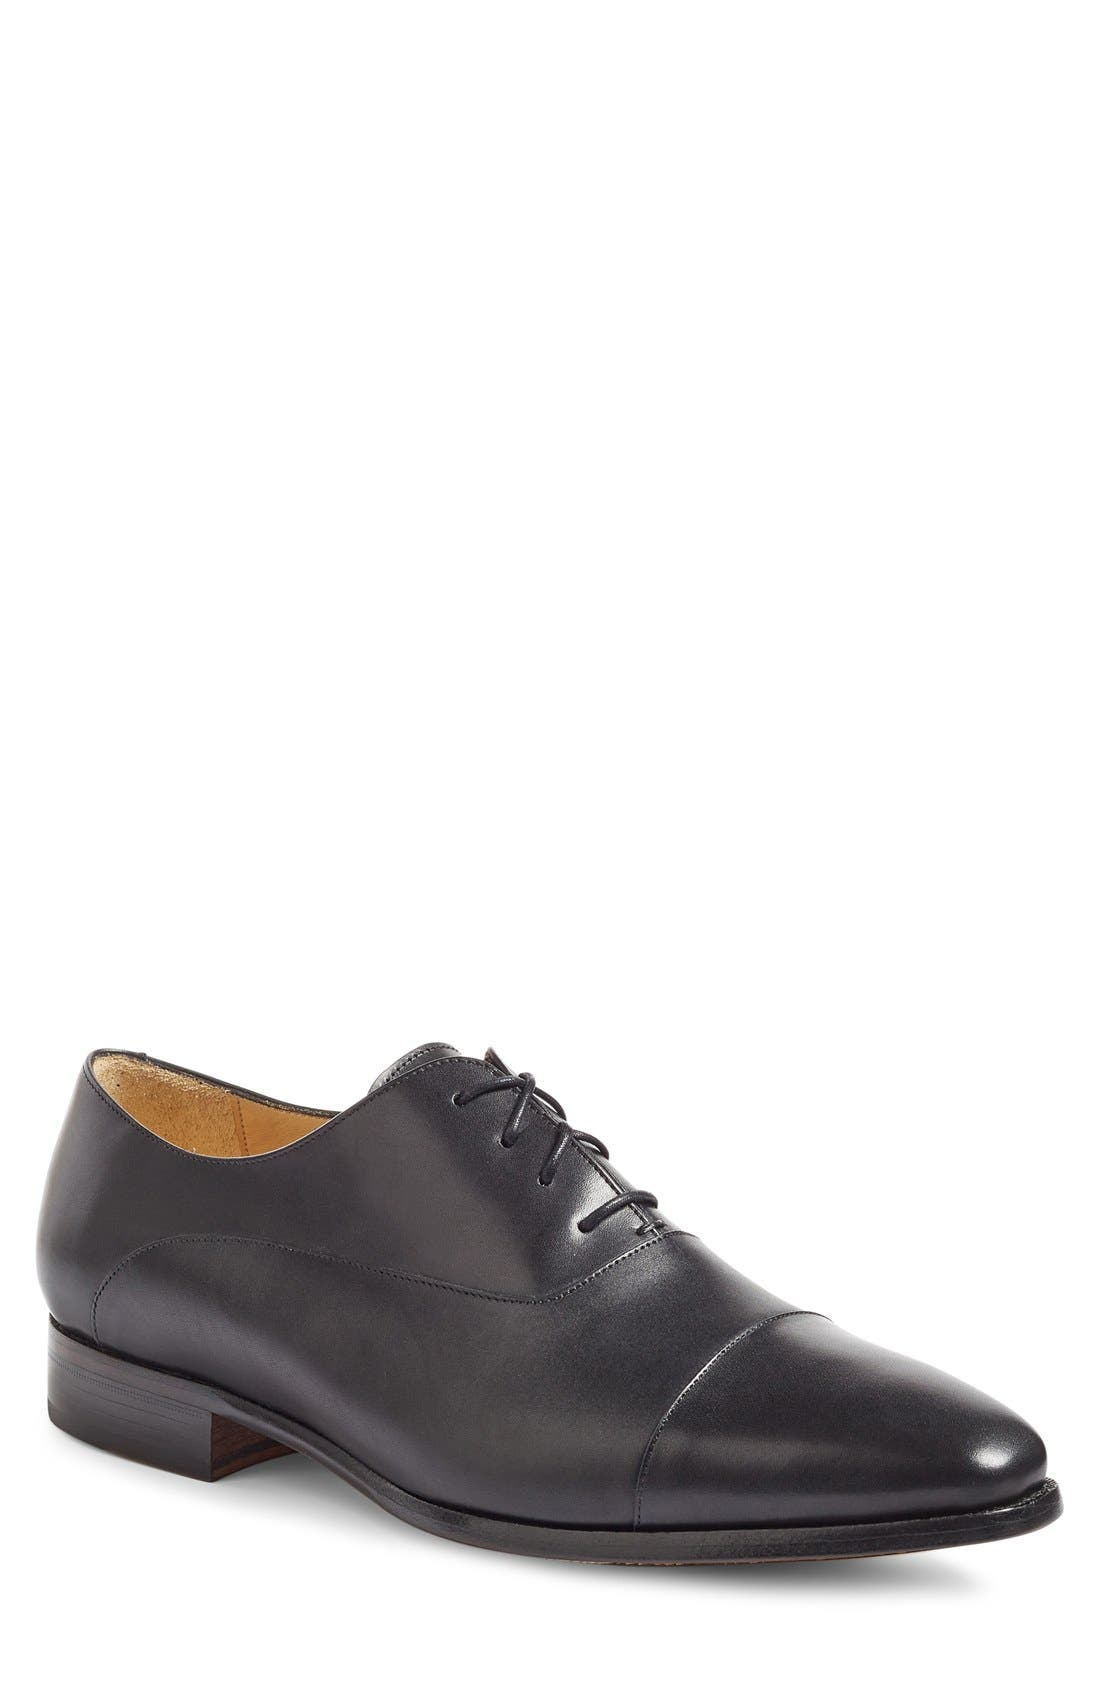 Alternate Image 1 Selected - Jack Erwin Joe Cap Toe Oxford (Men)